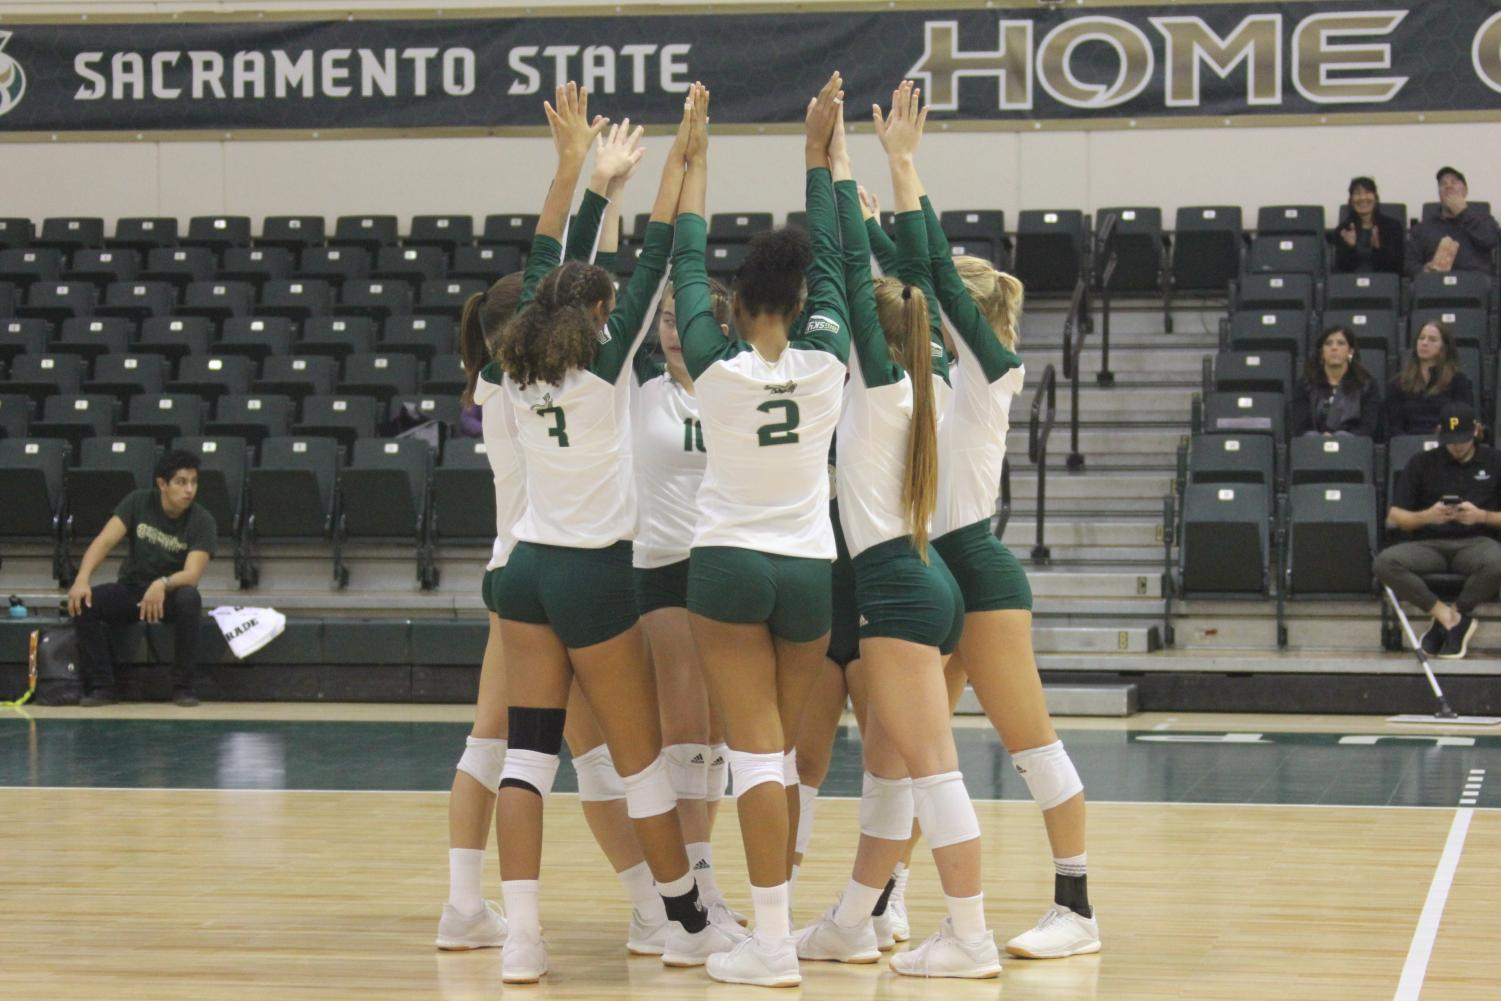 Members of the Sac State volleyball team celebrate a set win against Idaho on Thursday, Oct. 31 at The Nest. The Hornets went 1-1 on their recent road trip and now have a record of 13-14 (8-6 Big Sky Conference) headed into the final two weeks of the regular season.